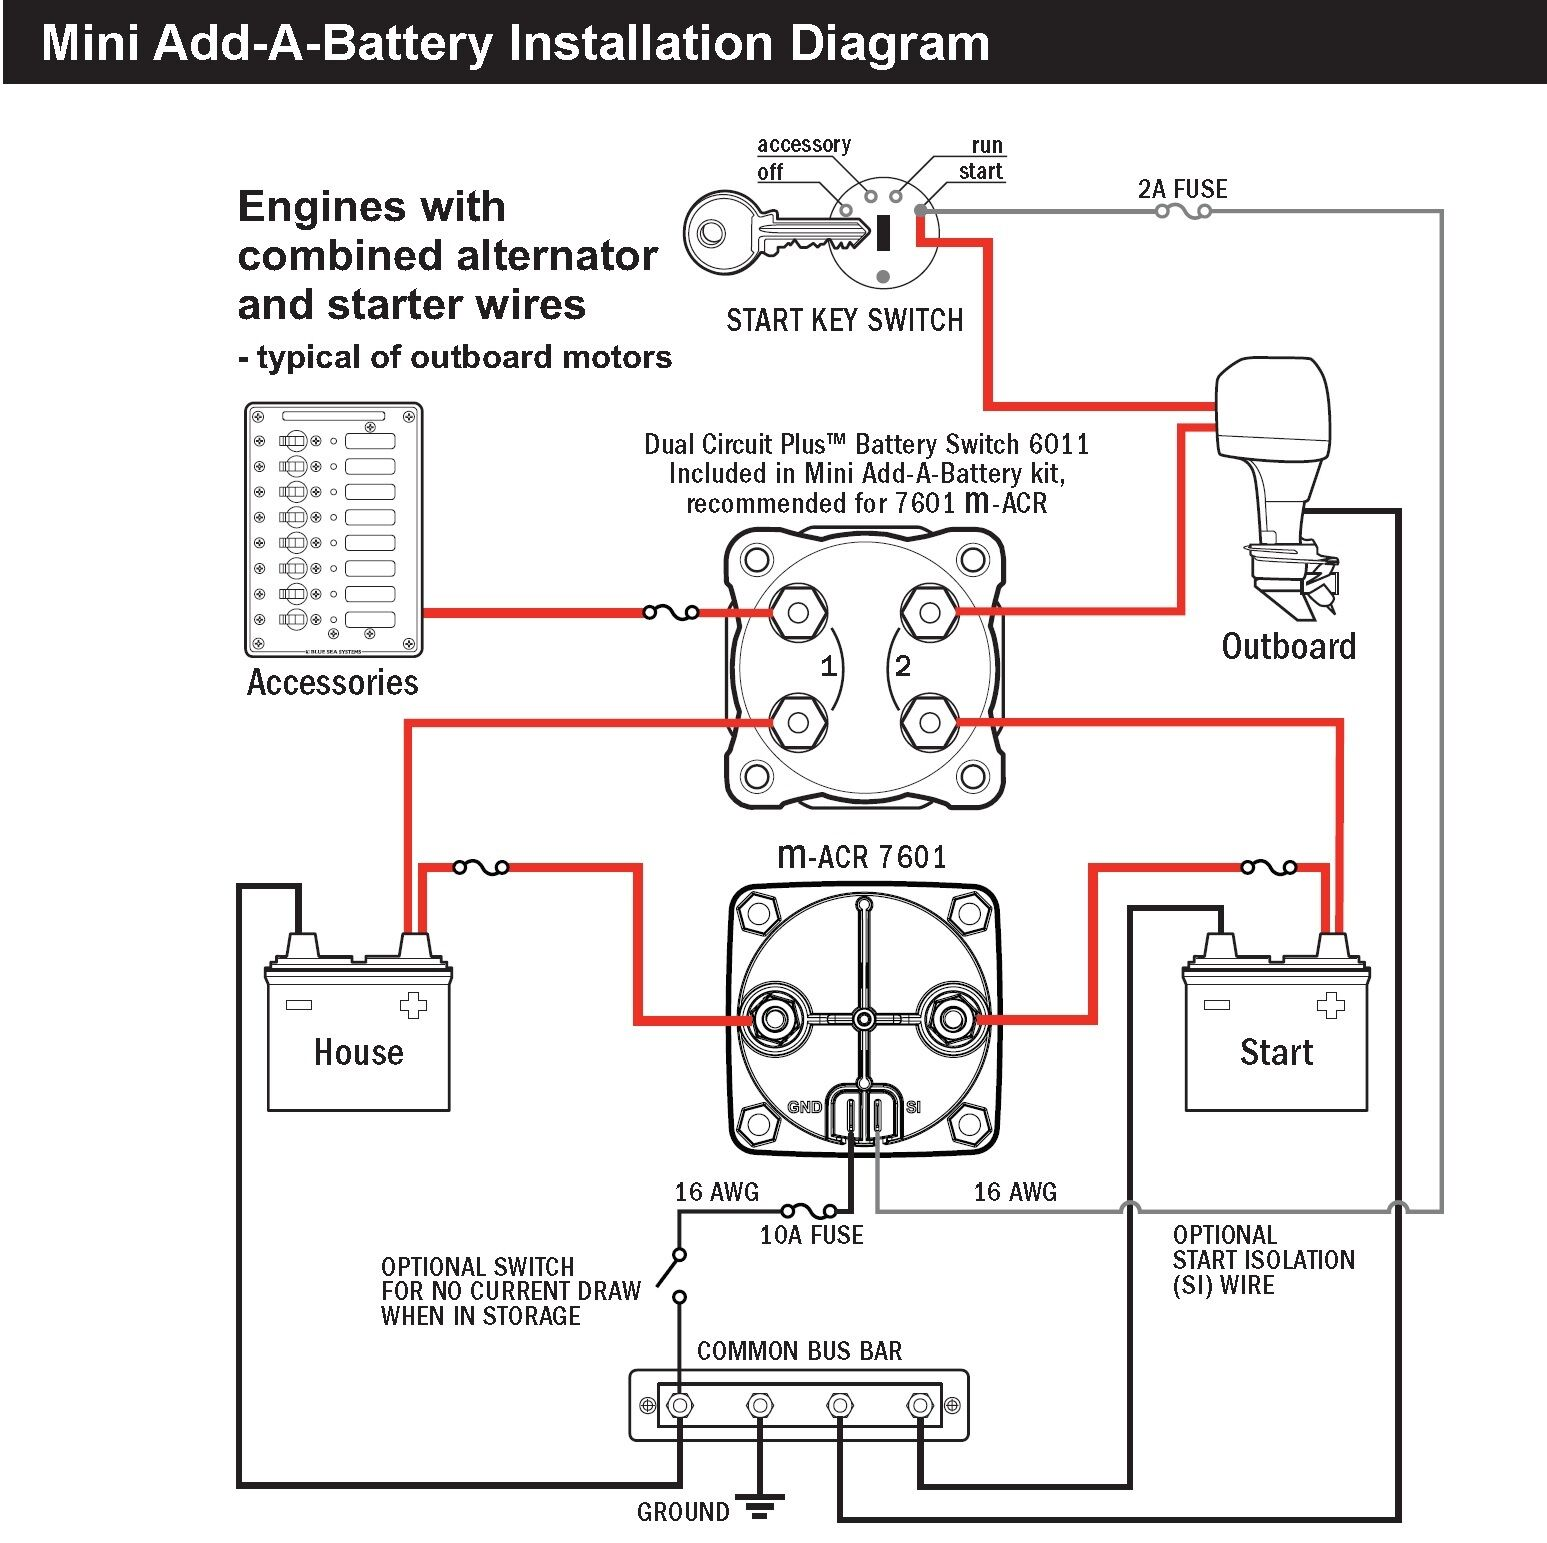 $(KGrHqJHJEkFE2s+(4!BRe pREItg~~60_57 which battery switch is best for a 21 with two batteries plus main scotty downrigger wiring diagram at virtualis.co